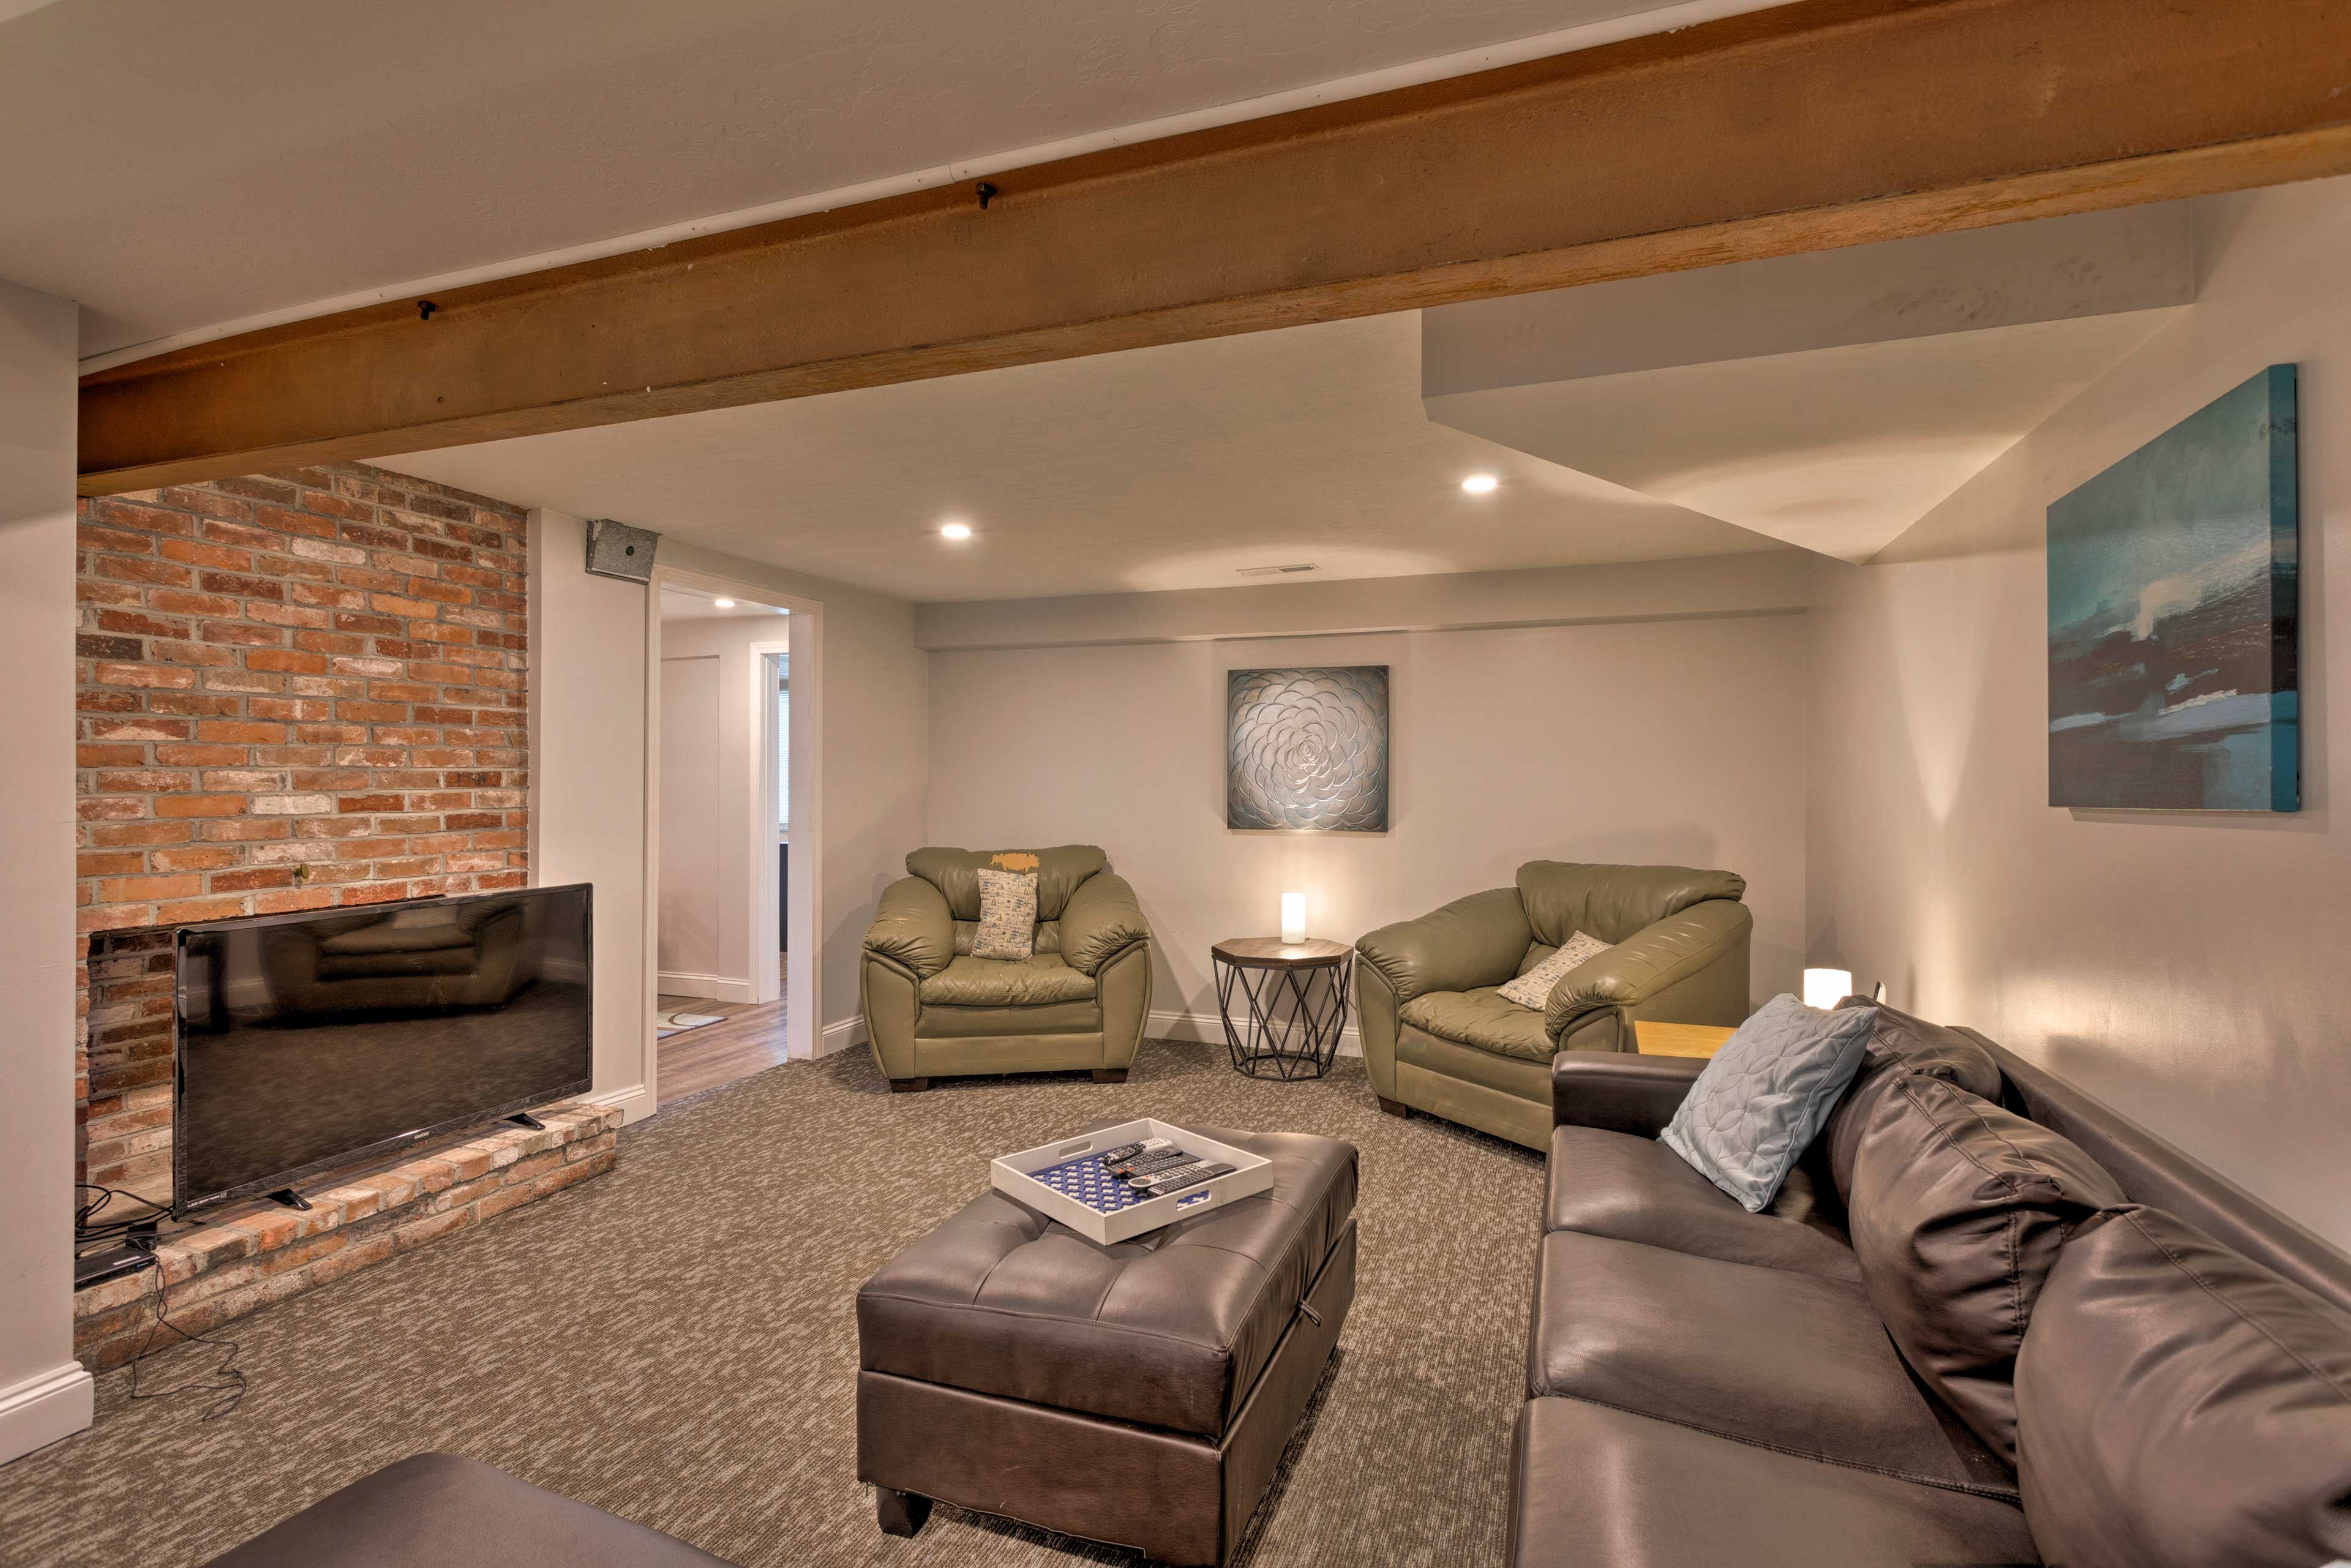 Host a movie night downstairs in the basement.